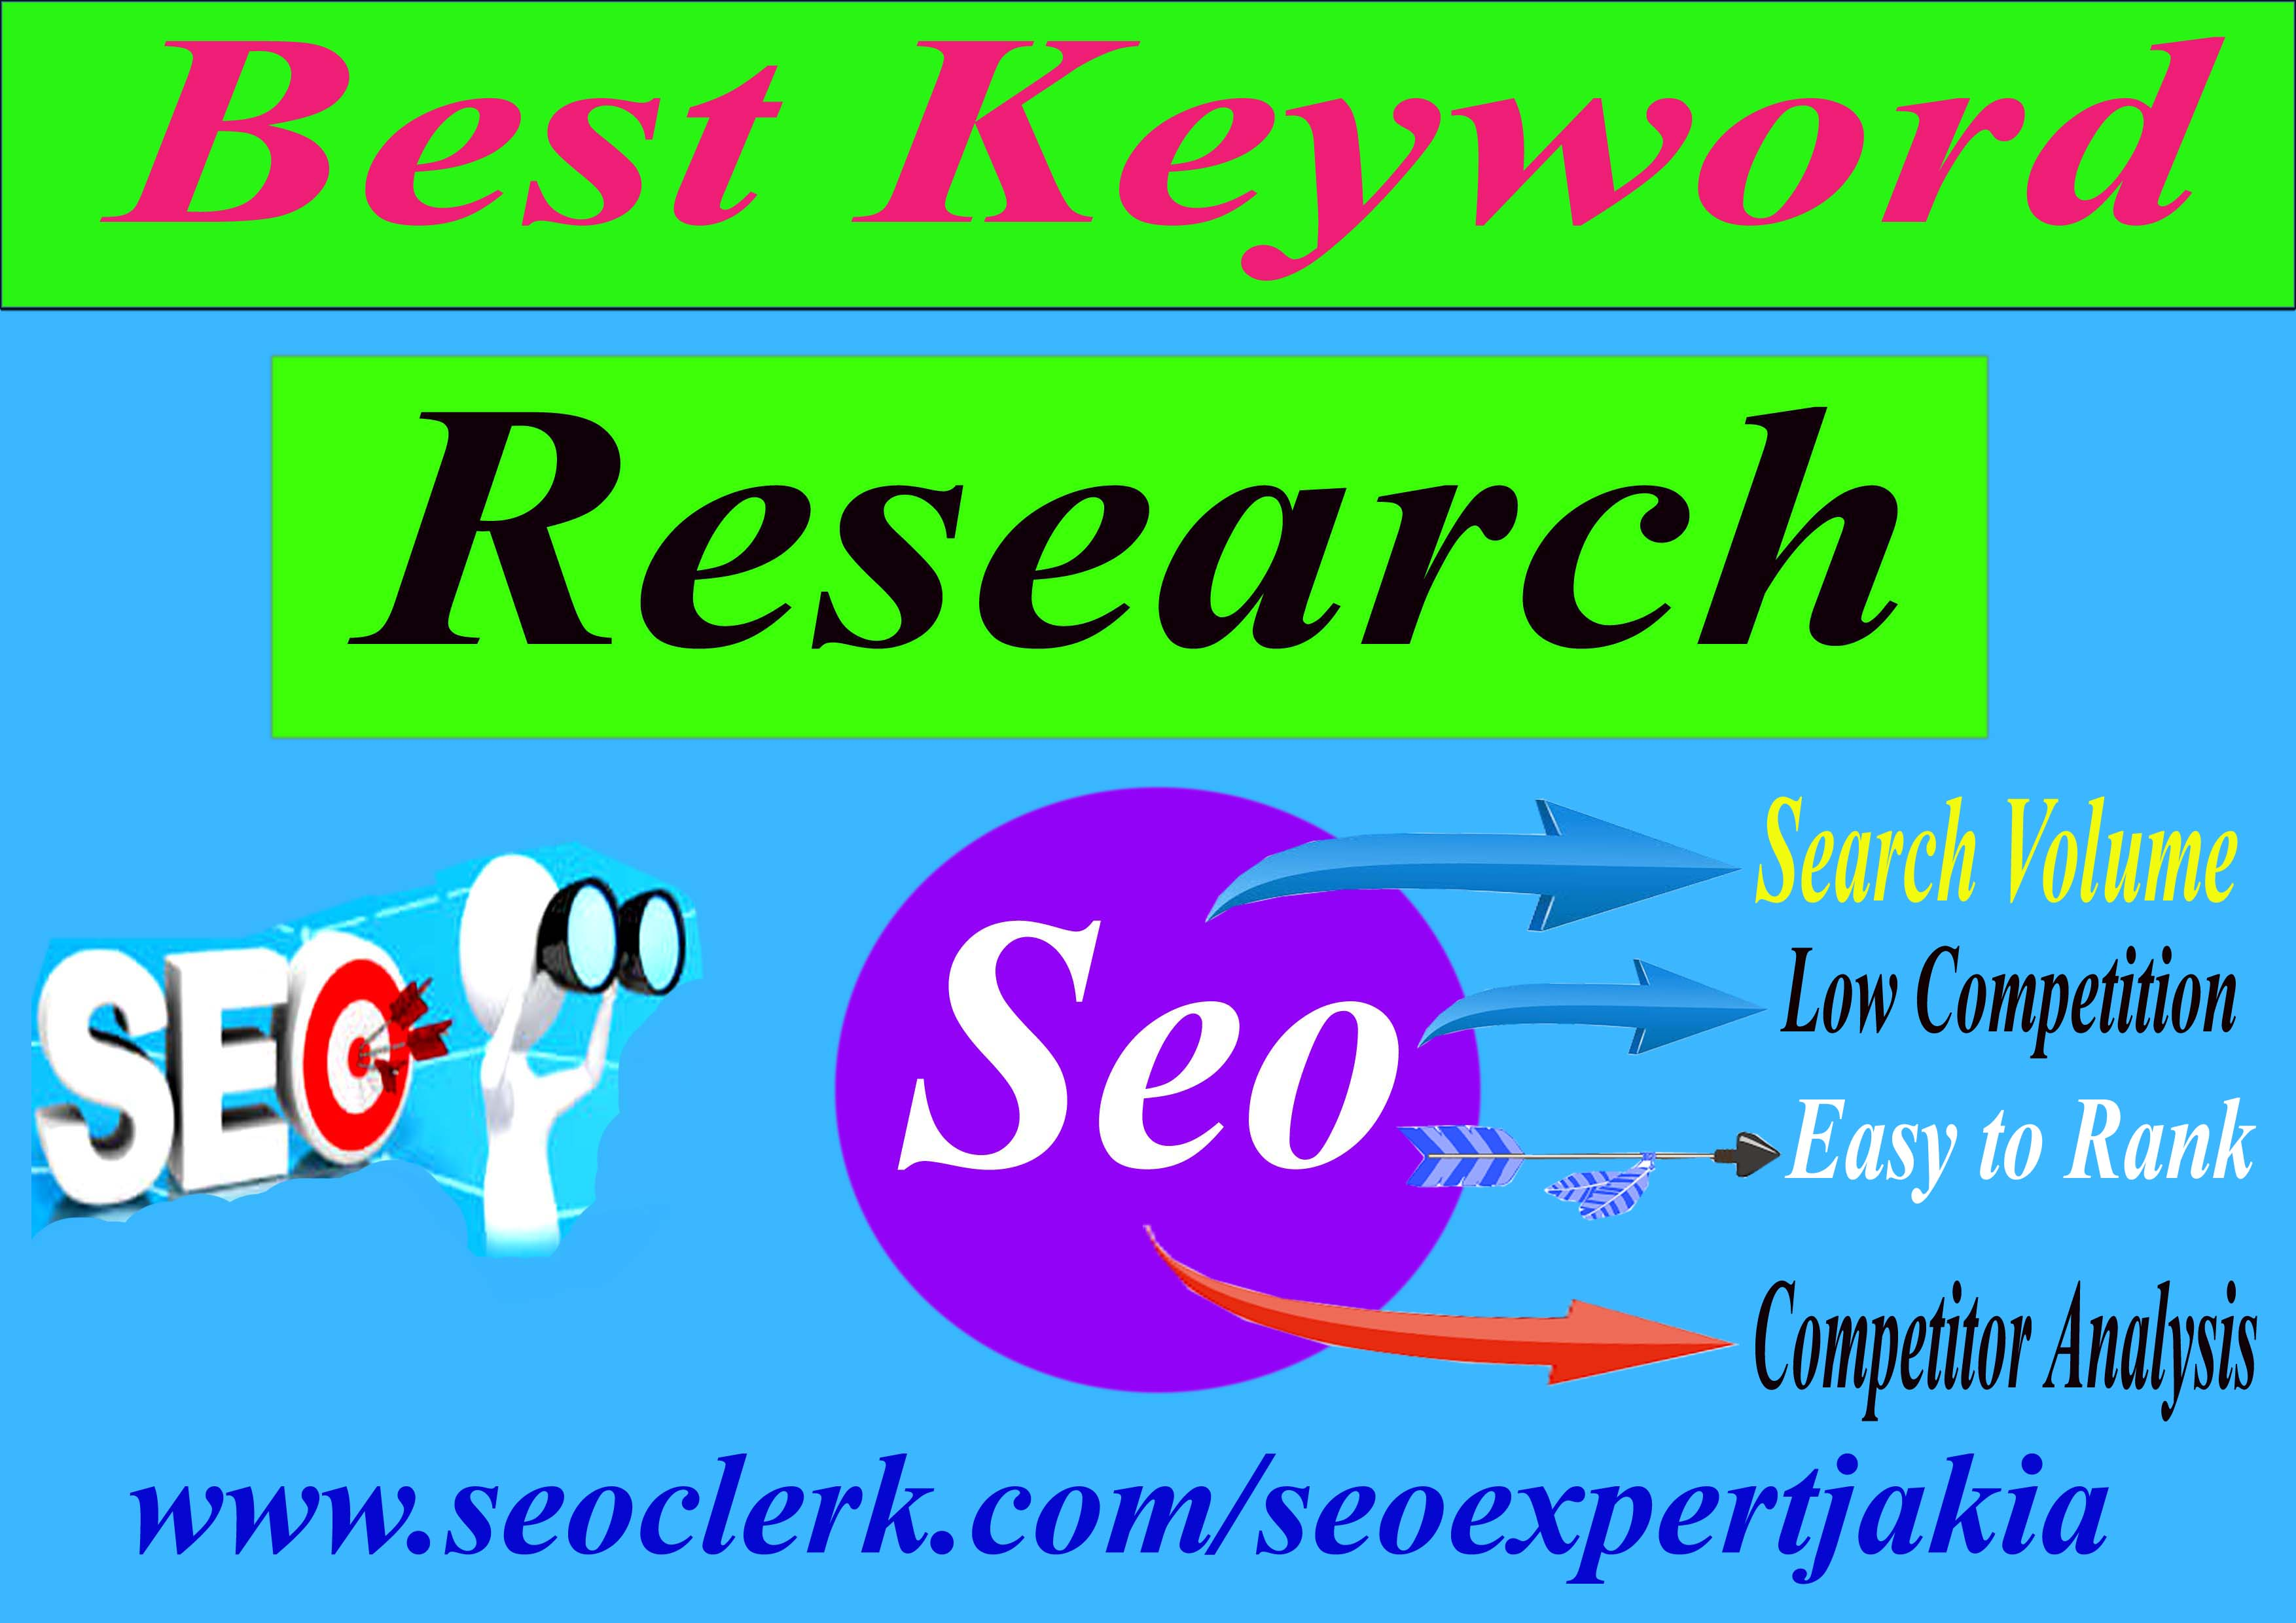 I will Provide best 3 Keyword research for onpage seo optimization